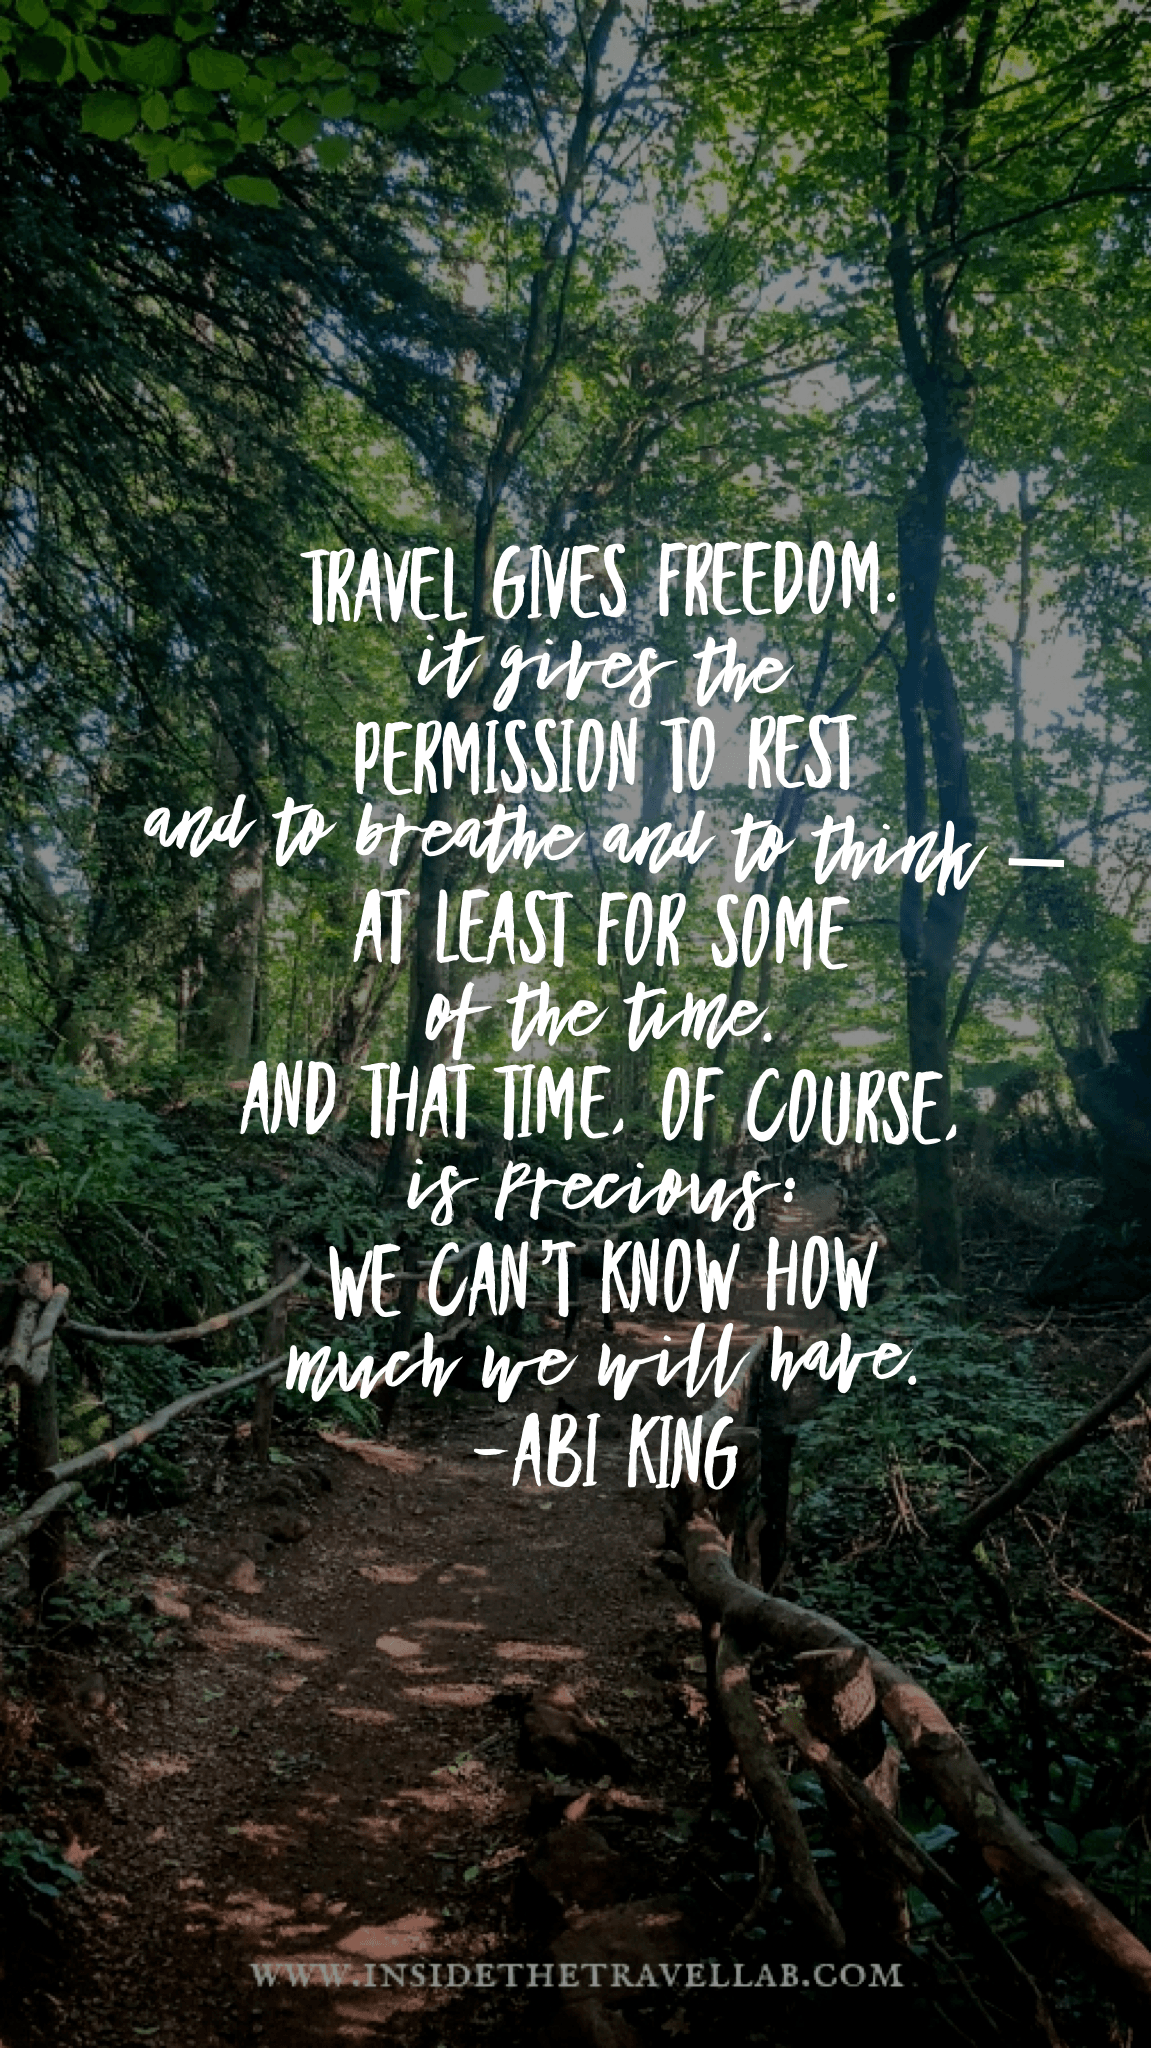 Travel quote travel gives freedom by Abigail King